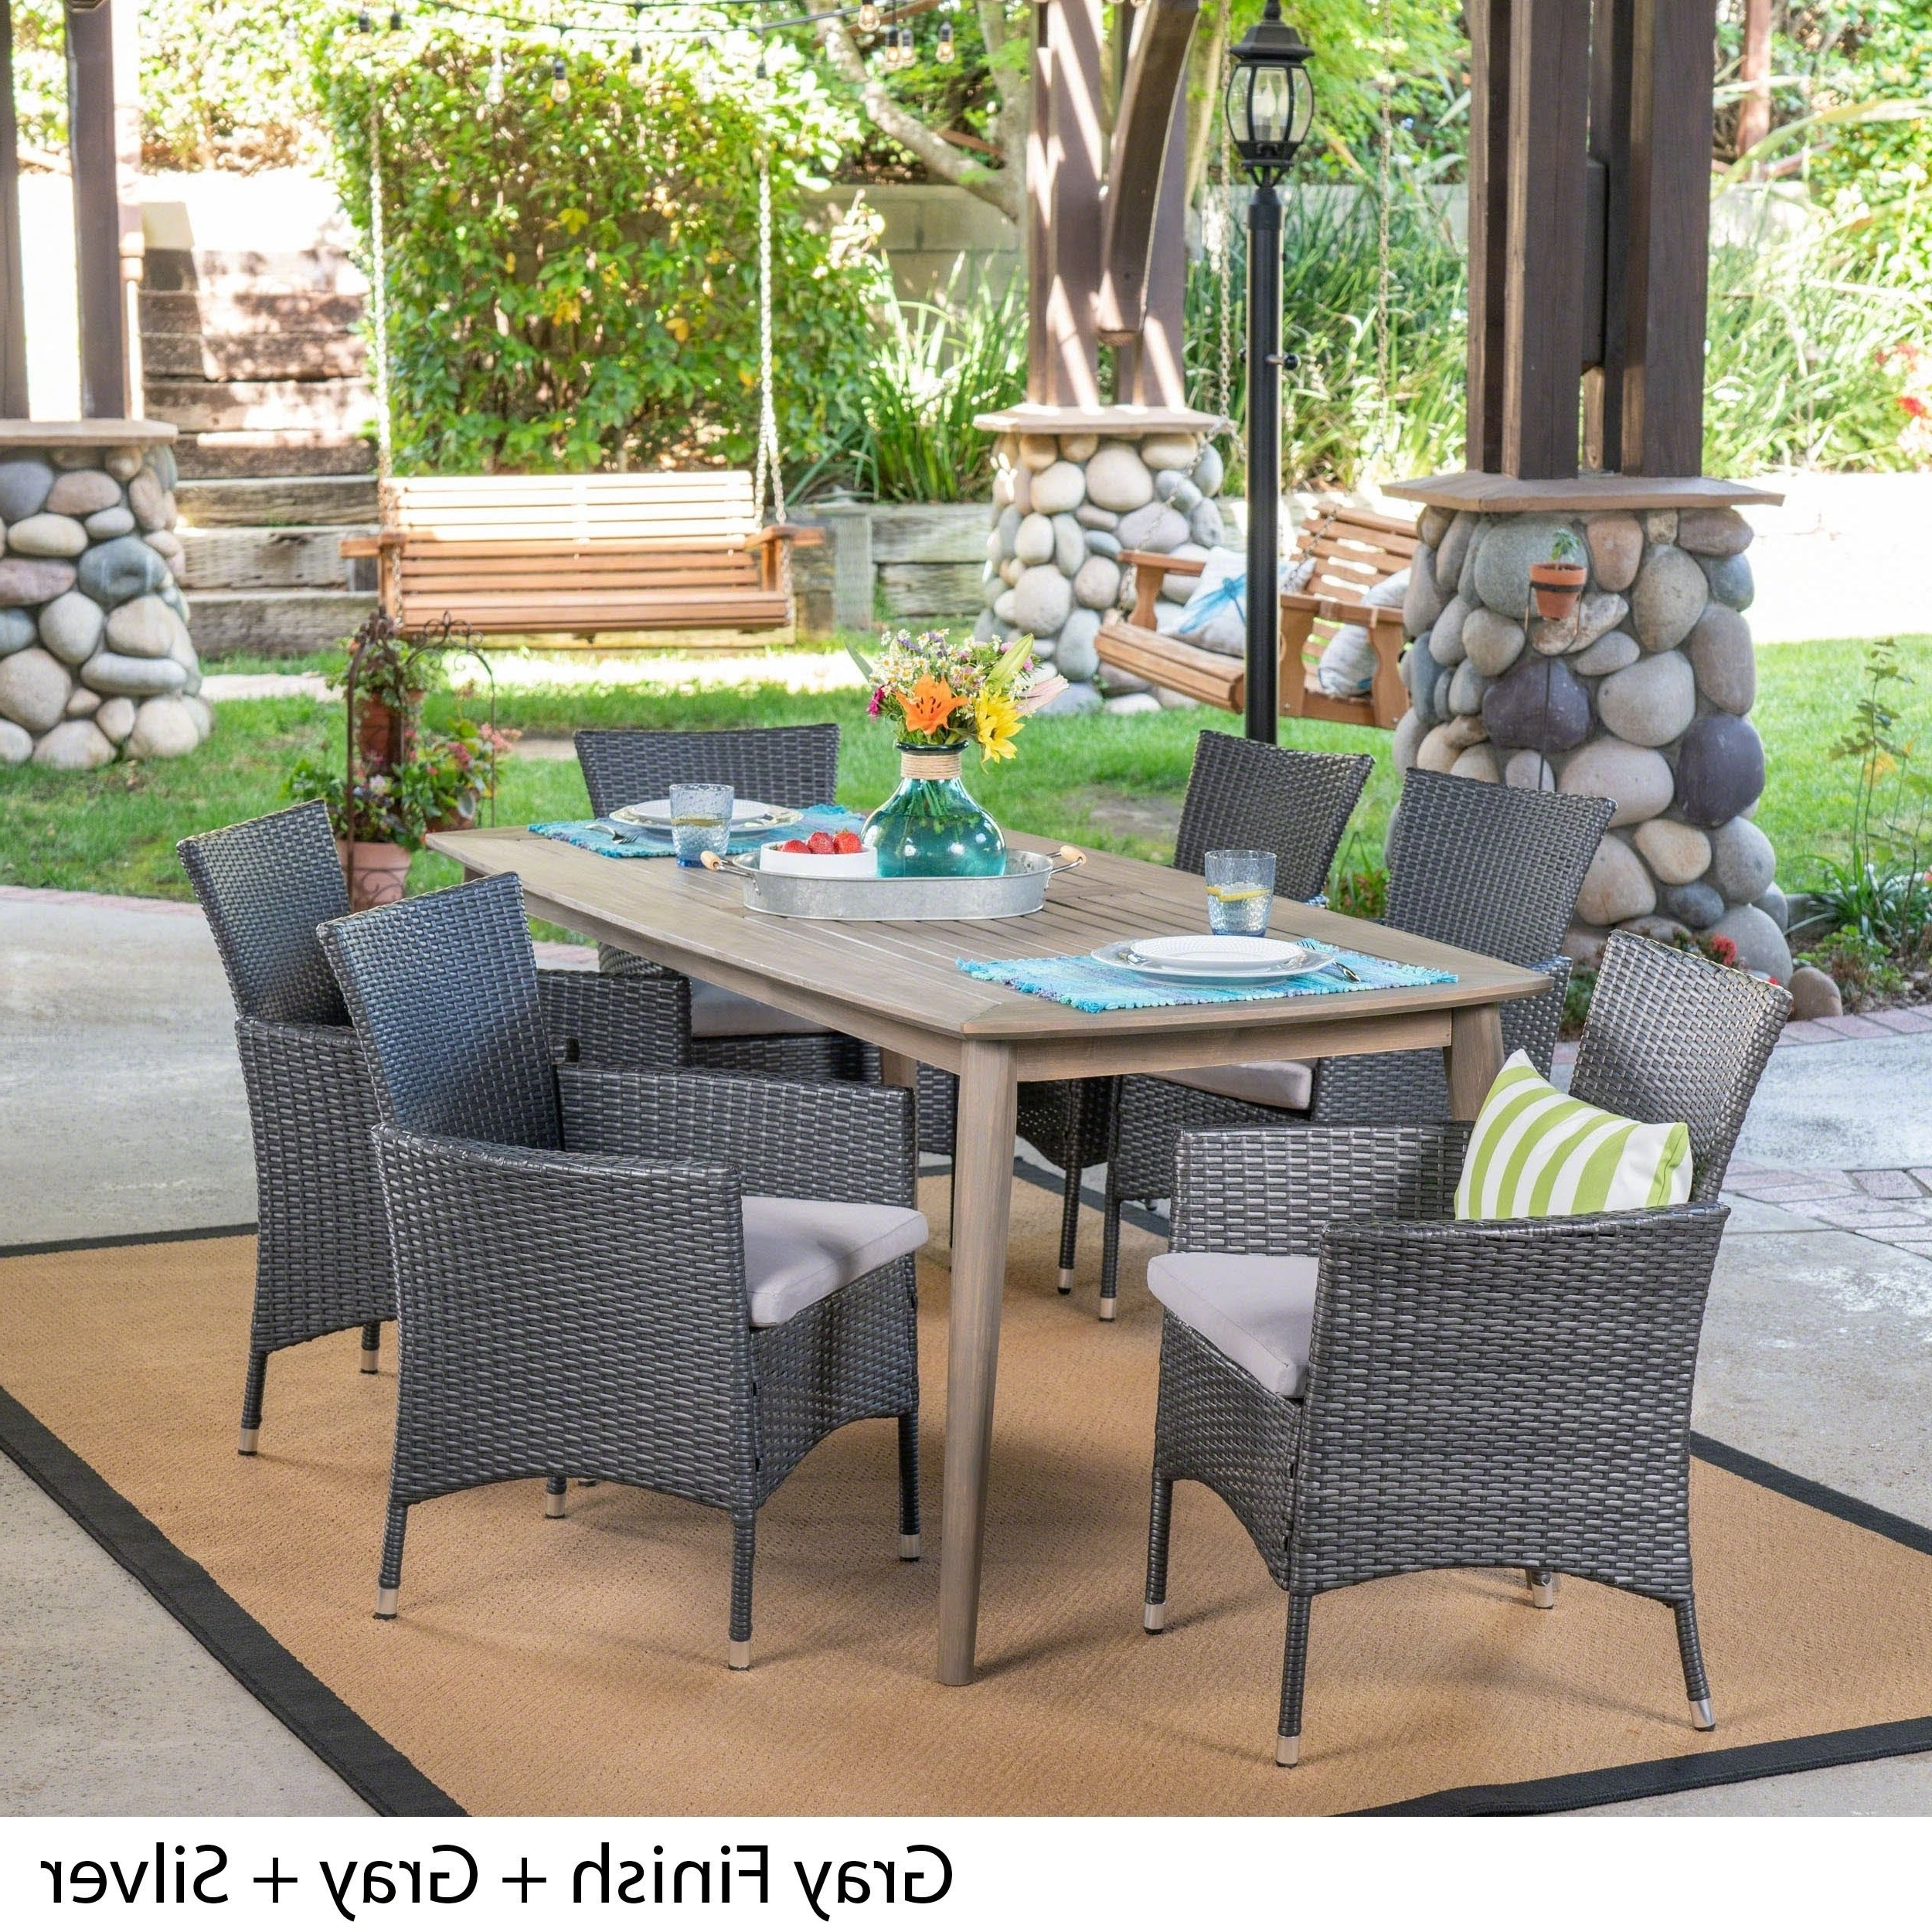 Most Recent Shop Jaxon Outdoor 7 Piece Multibrown Pe Wicker Dining Set With For Jaxon 7 Piece Rectangle Dining Sets With Upholstered Chairs (Gallery 11 of 25)